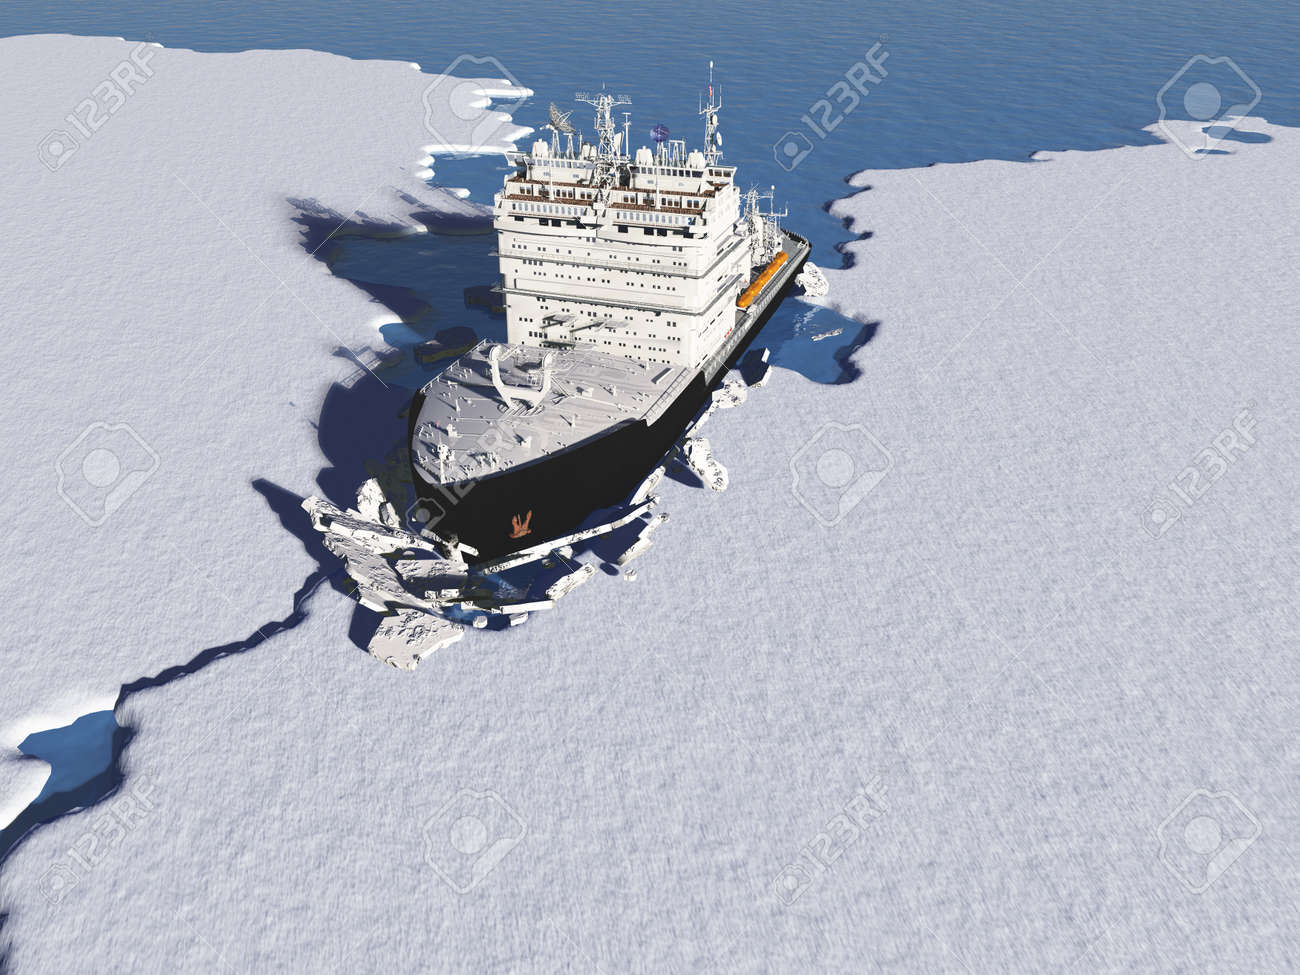 Icebreaker ship on the ice in the sea.,3d render - 117071279